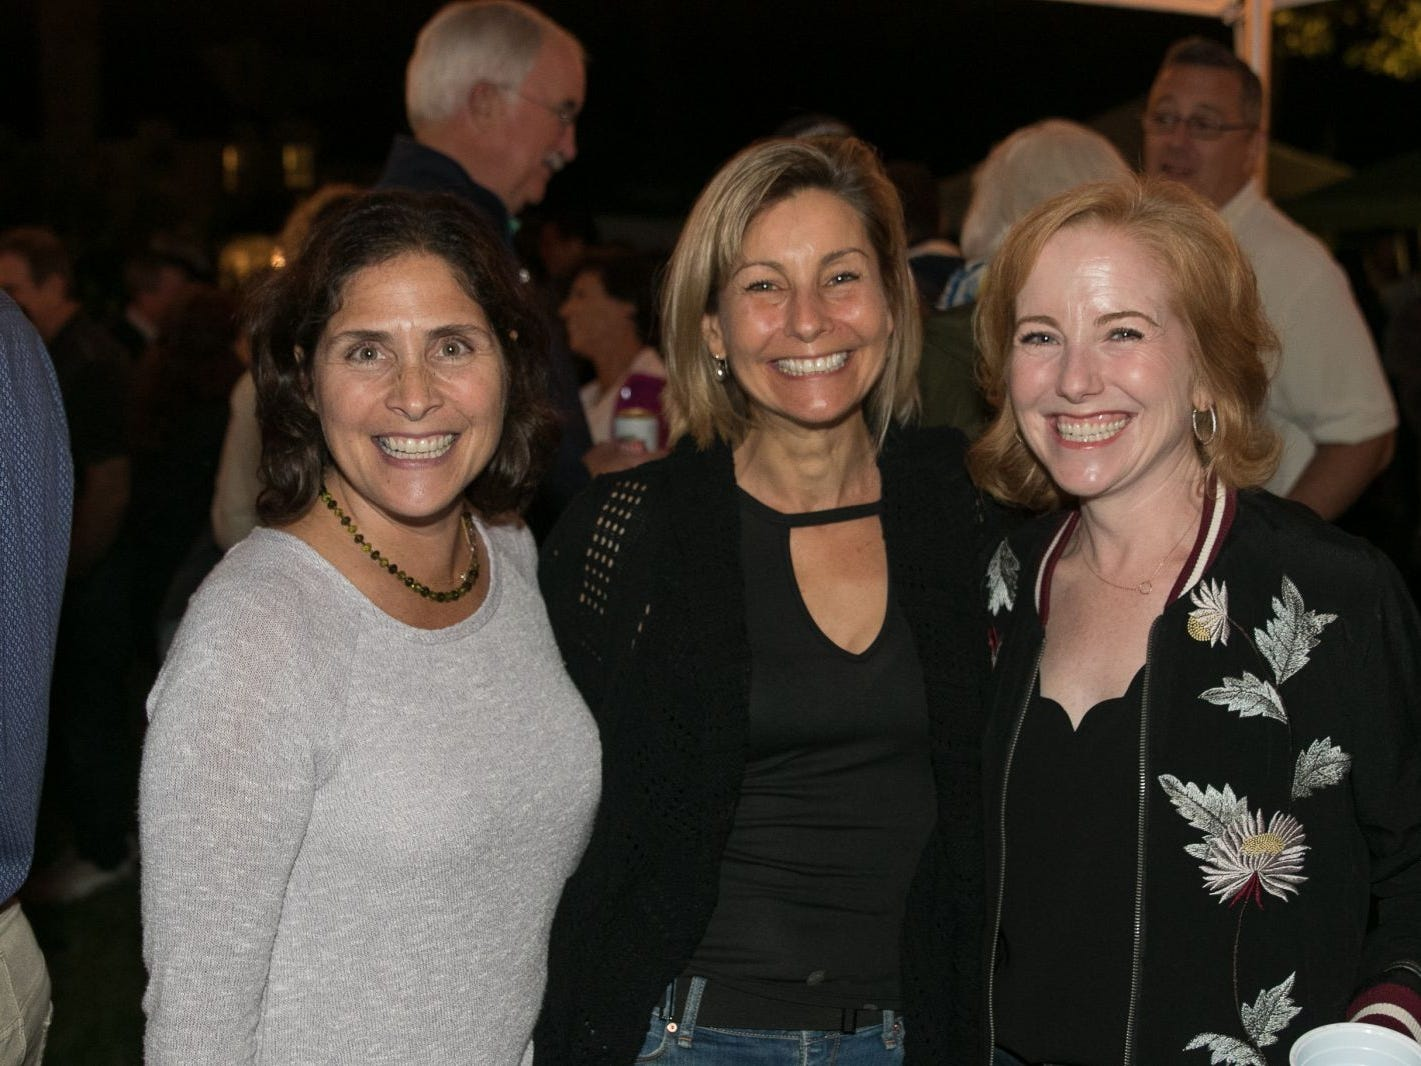 "Dena Bronowich, Alyssa Becker, Nancy Koontz. Pam Chmiel, The Tres Amigos Paella Company (David Colin, Joe Scanlon and Jeff Saladucha), The Jims (Jim Gibney and Jim Toscano), George Nikias, Ron Oscher and Neil Murphy held Ridgewood Cooks for a Cause to benefit ""Cookies For Kids Cancer"" (Childhood Cancer Research) and YCS (Youth Consultaion Services) charities. 09/08/2018"